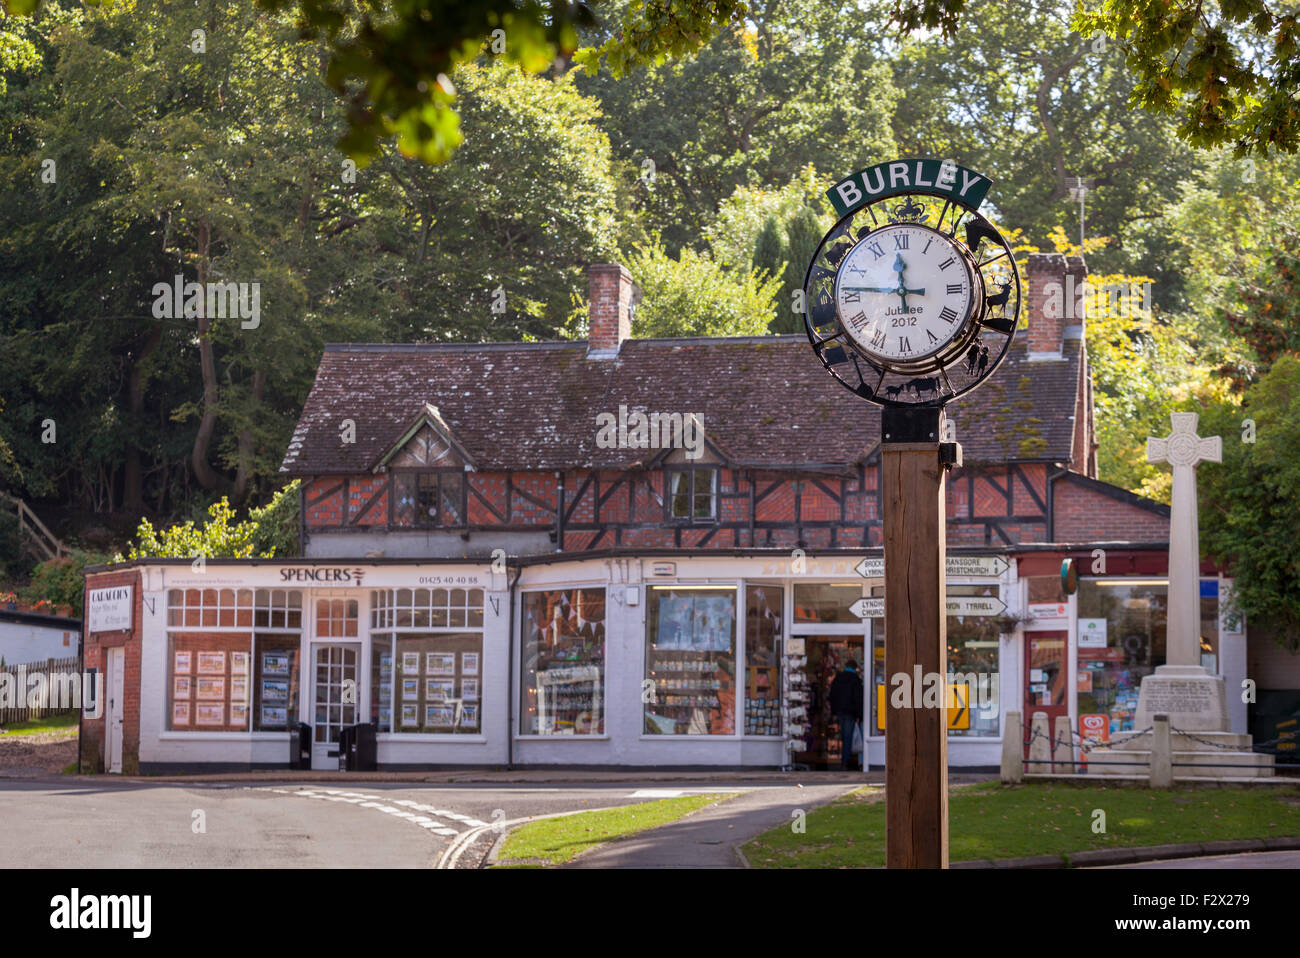 Burley Village in The New Forest, Hampshire, UK - Stock Image